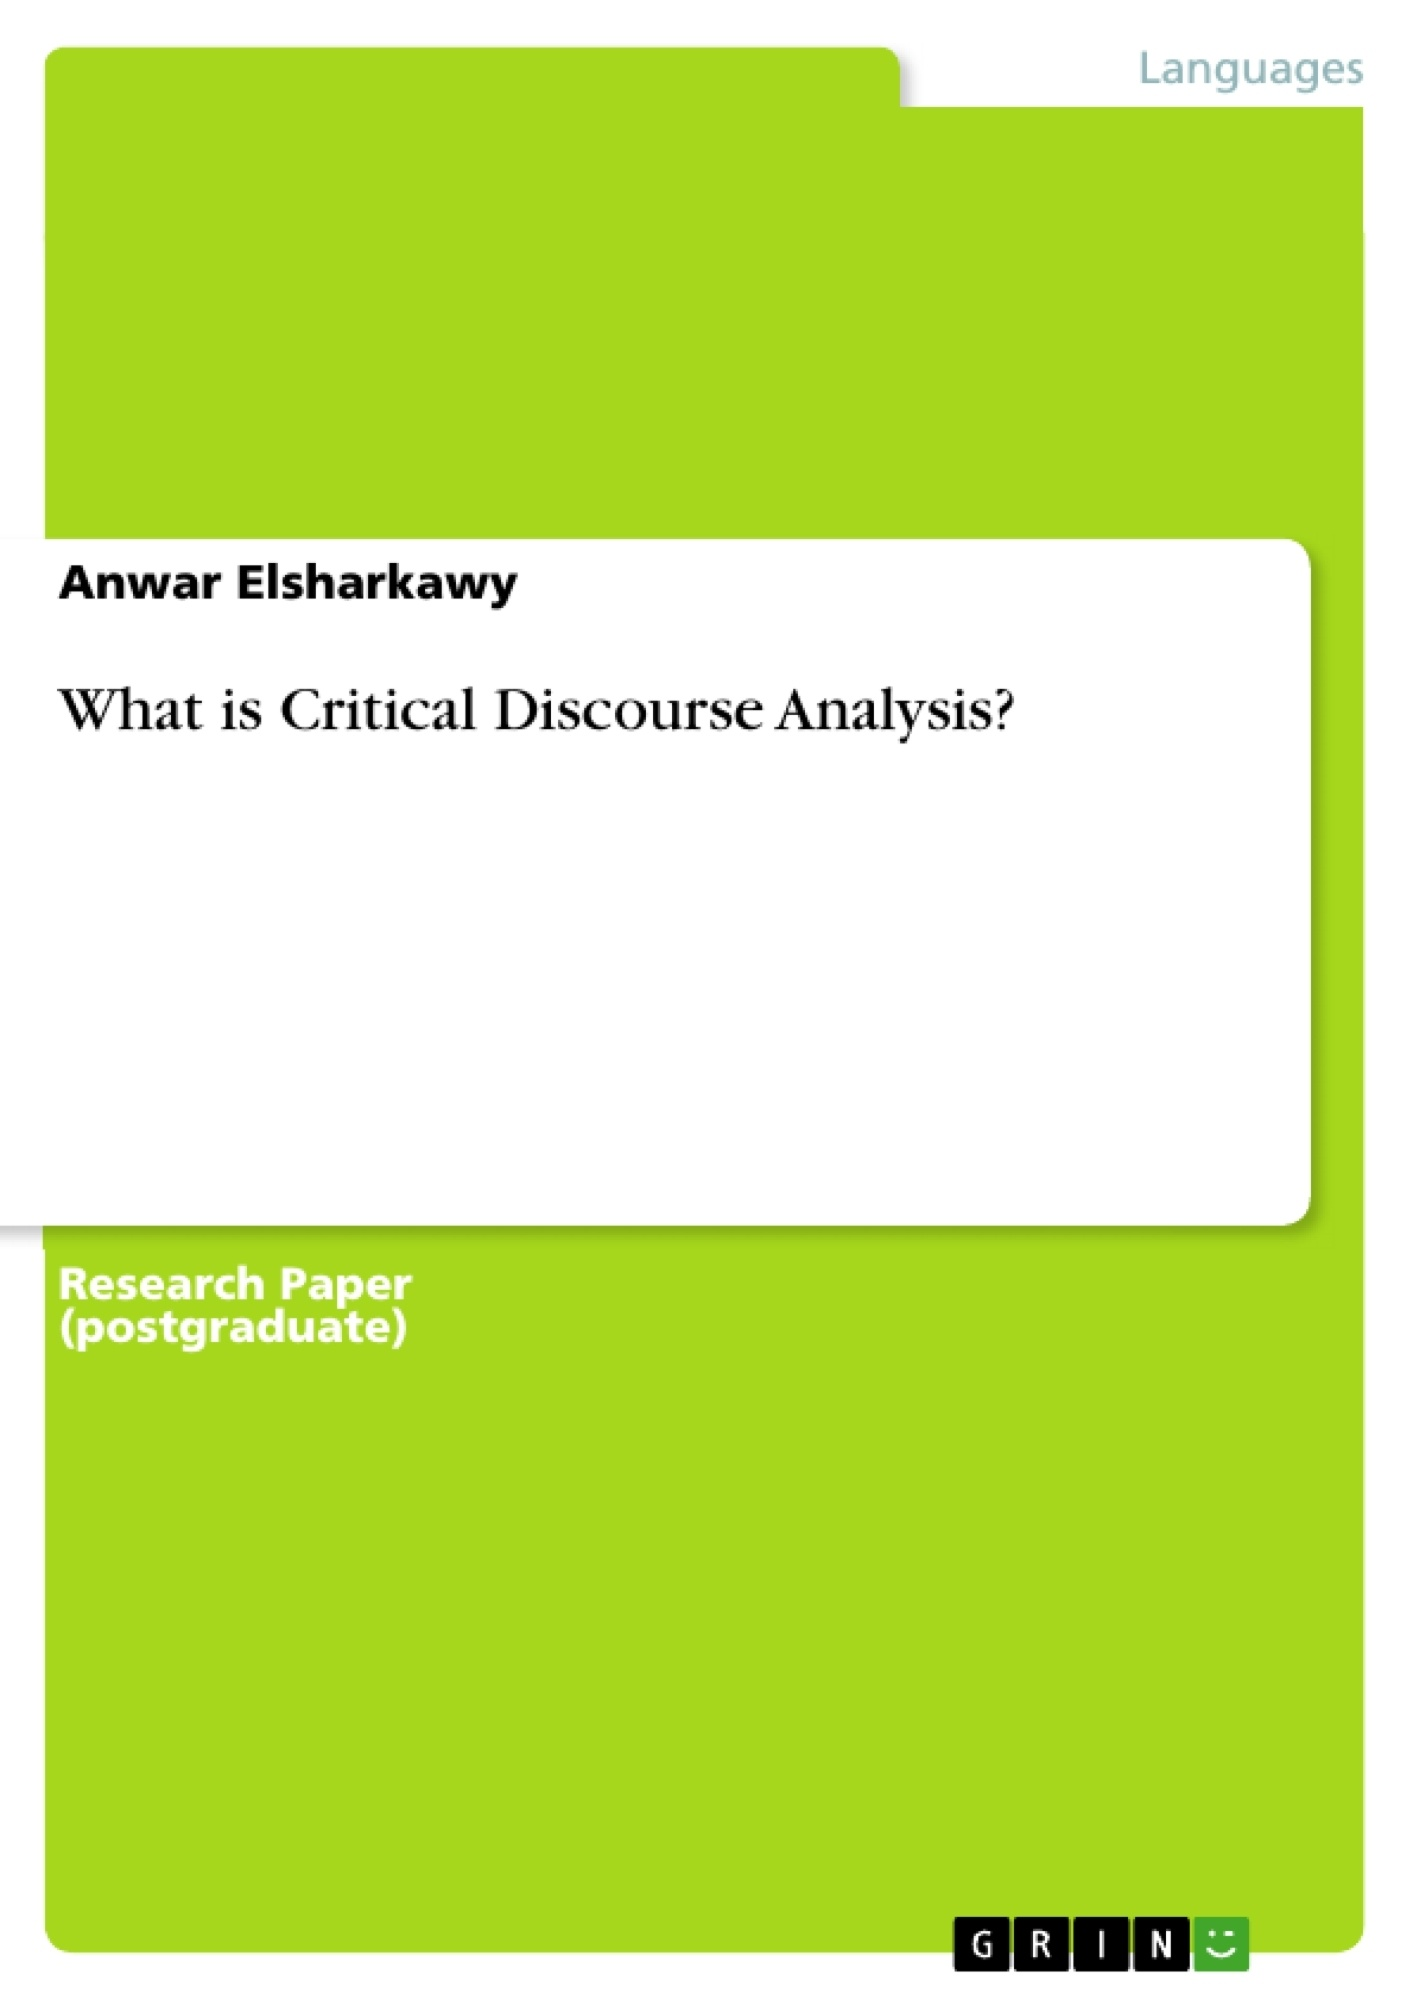 Title: What is Critical Discourse Analysis?